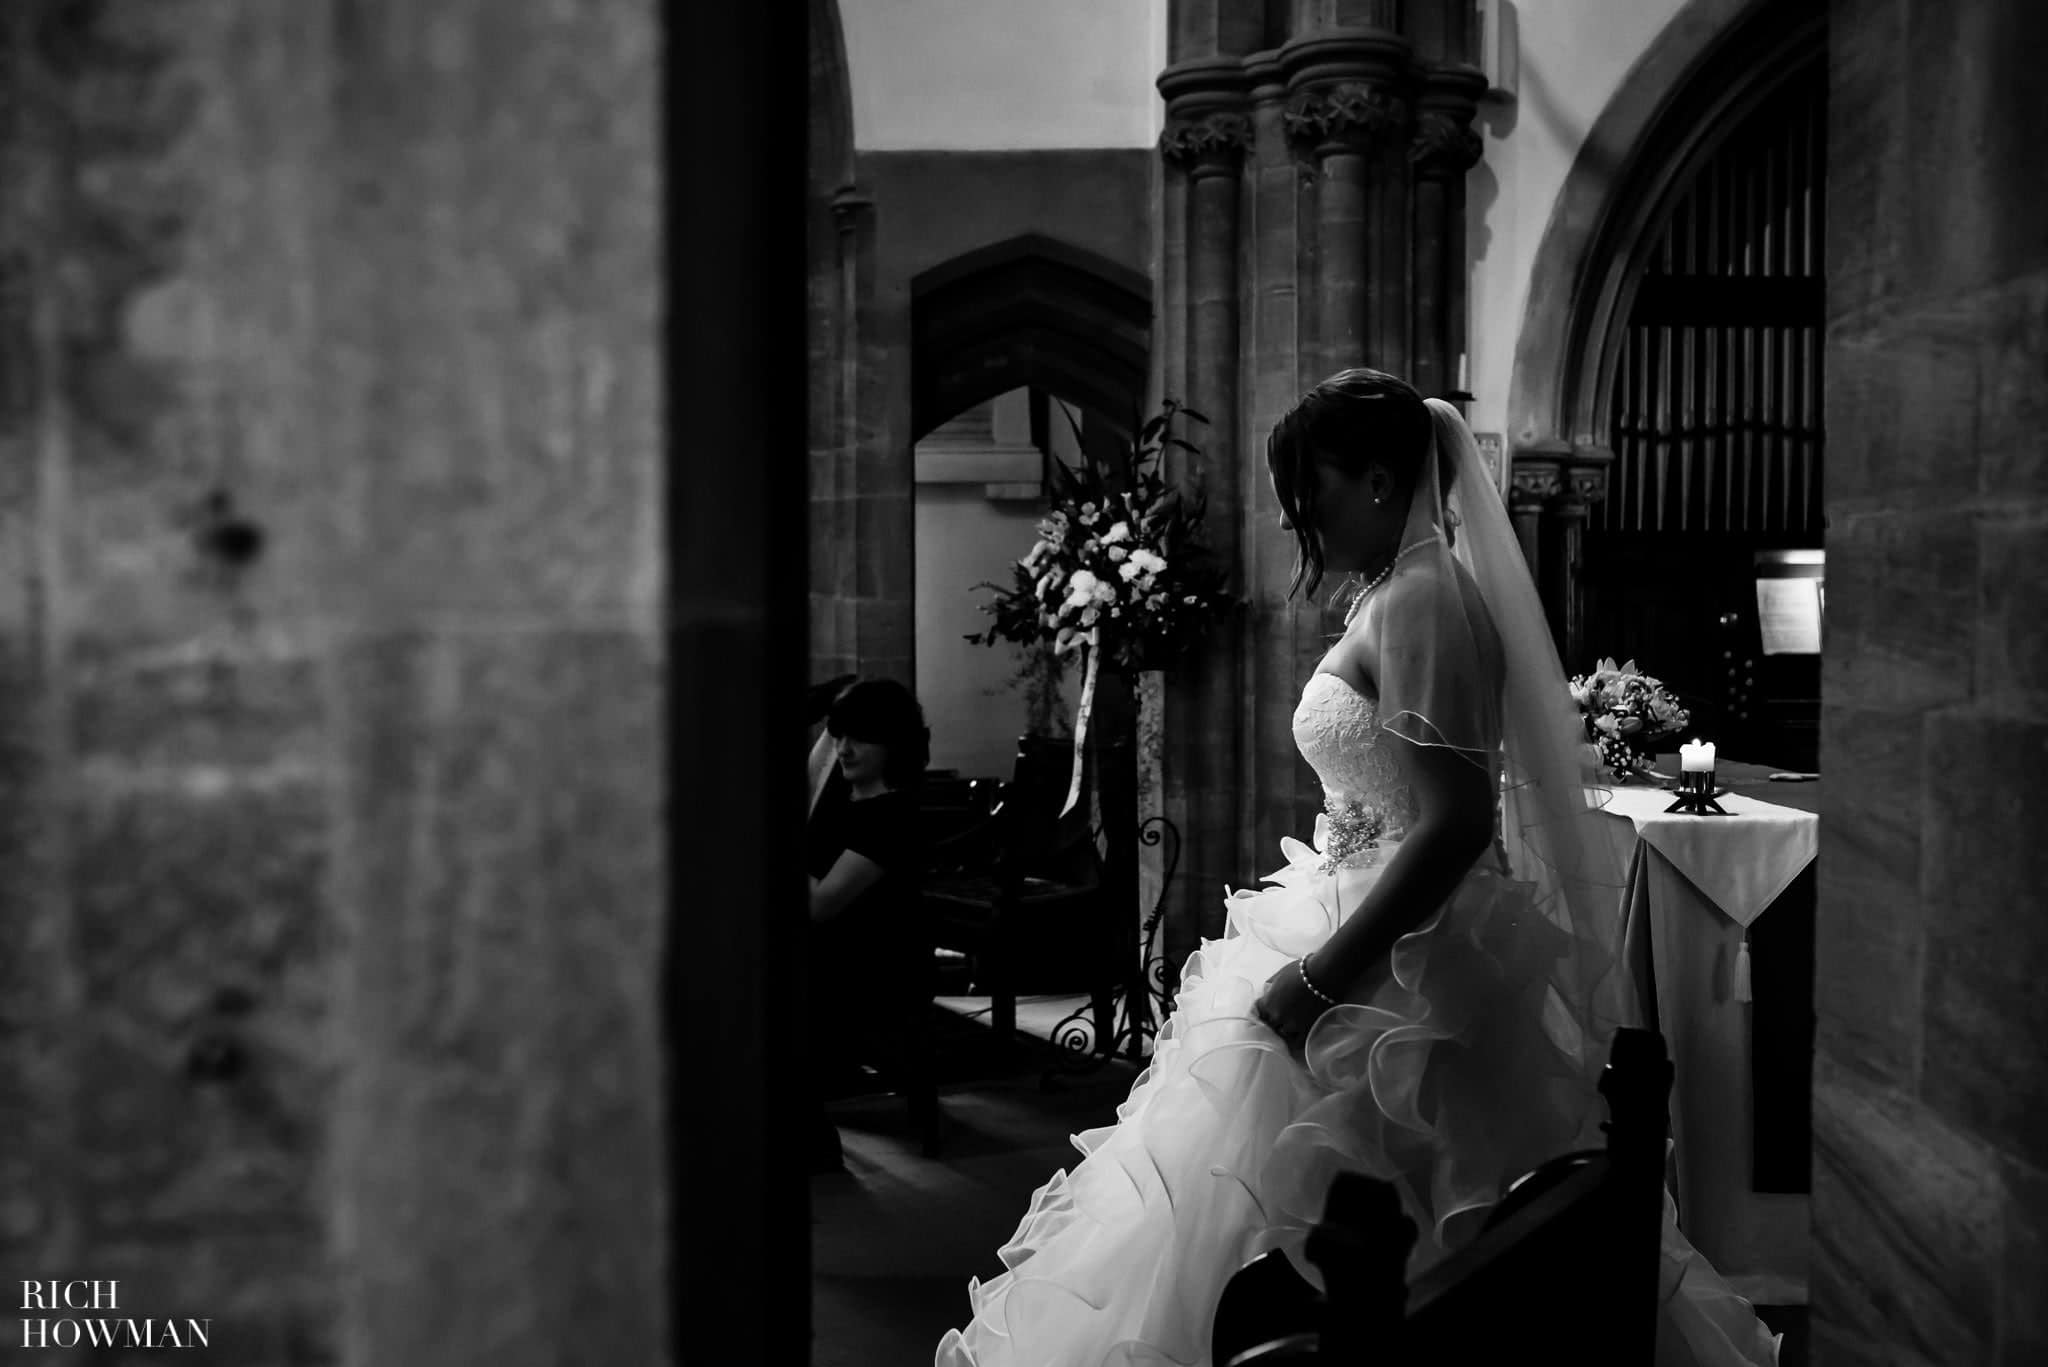 Documentary photograph of the bride walking forward to the vestry of the church to sign the register after getting married